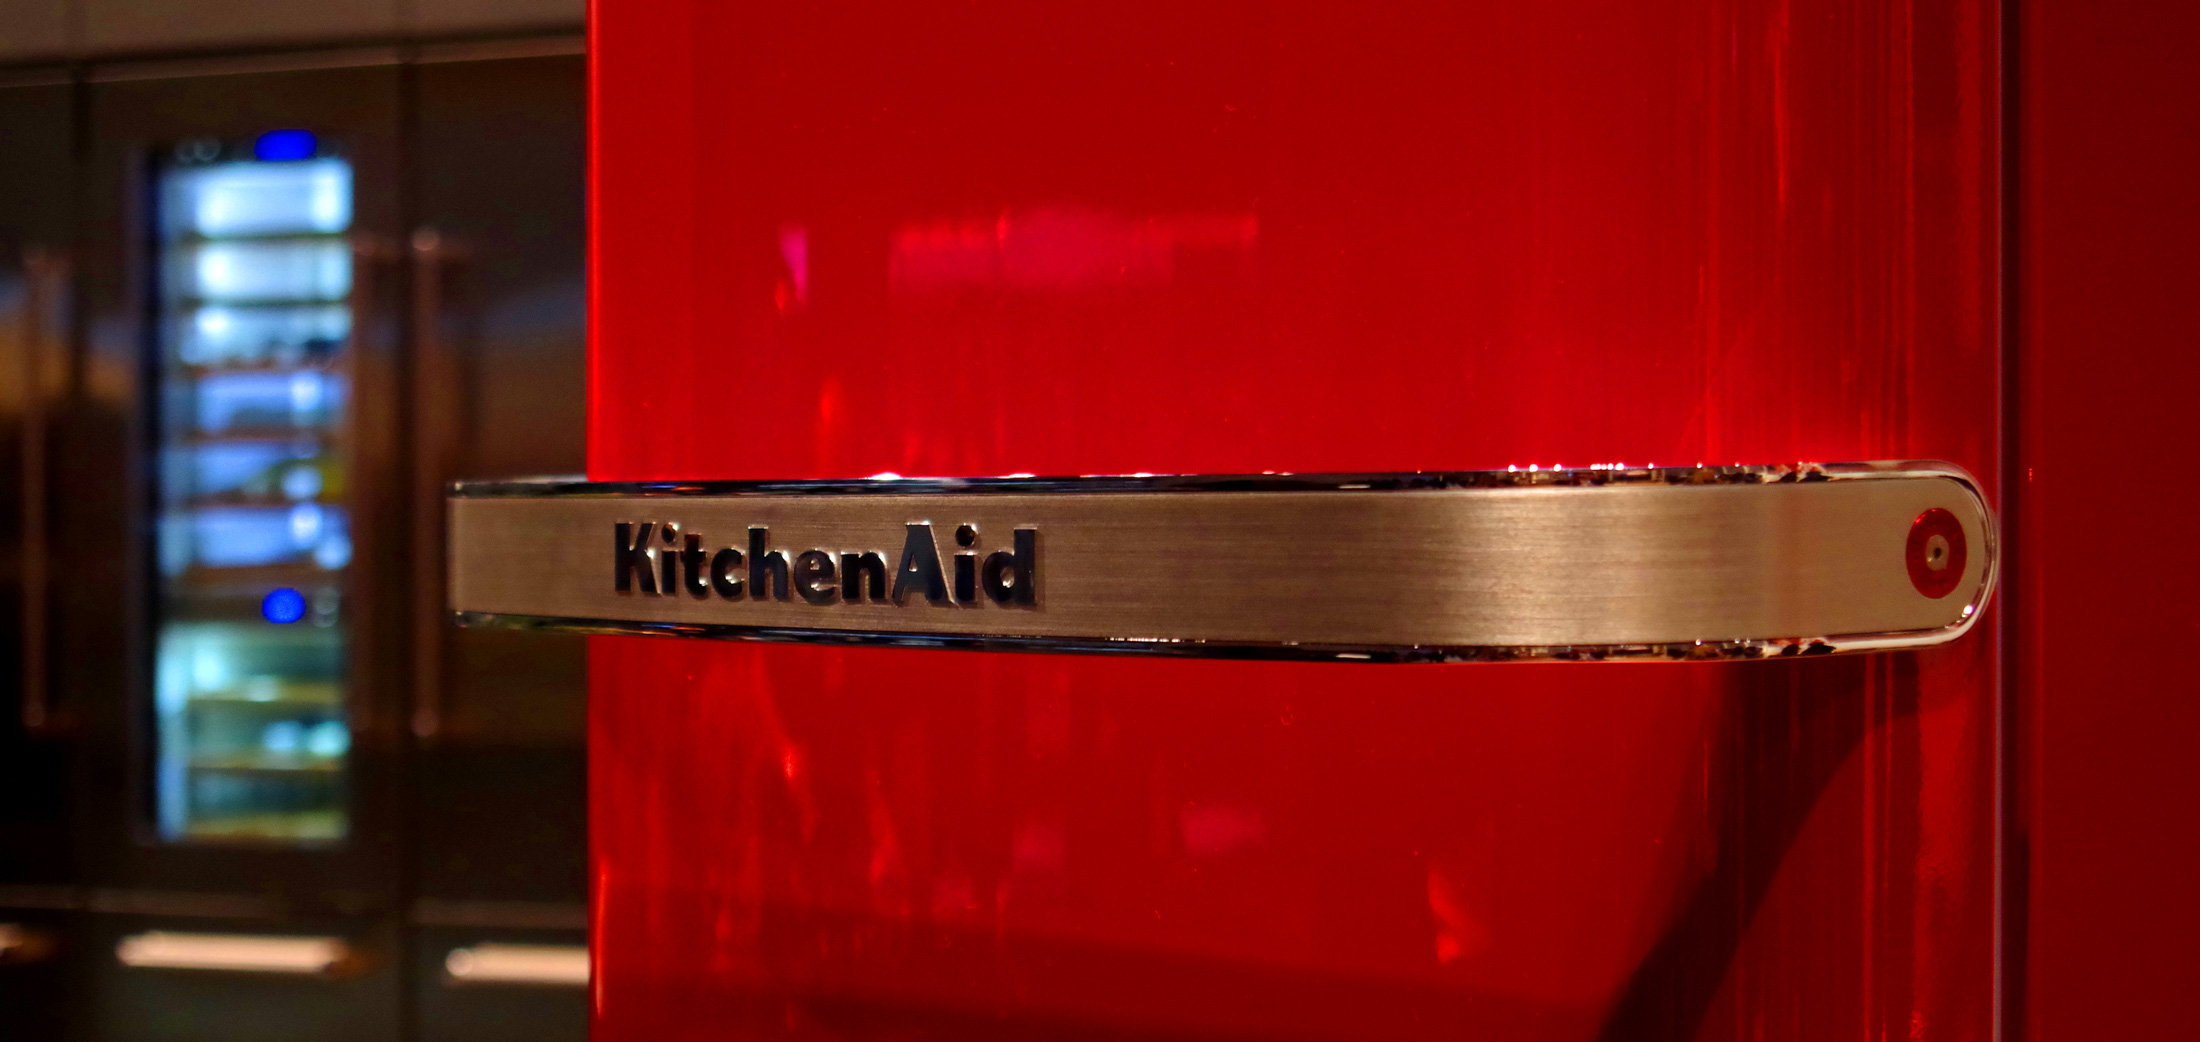 Kitchenaid Unveils Retro Refrigerators In Europe